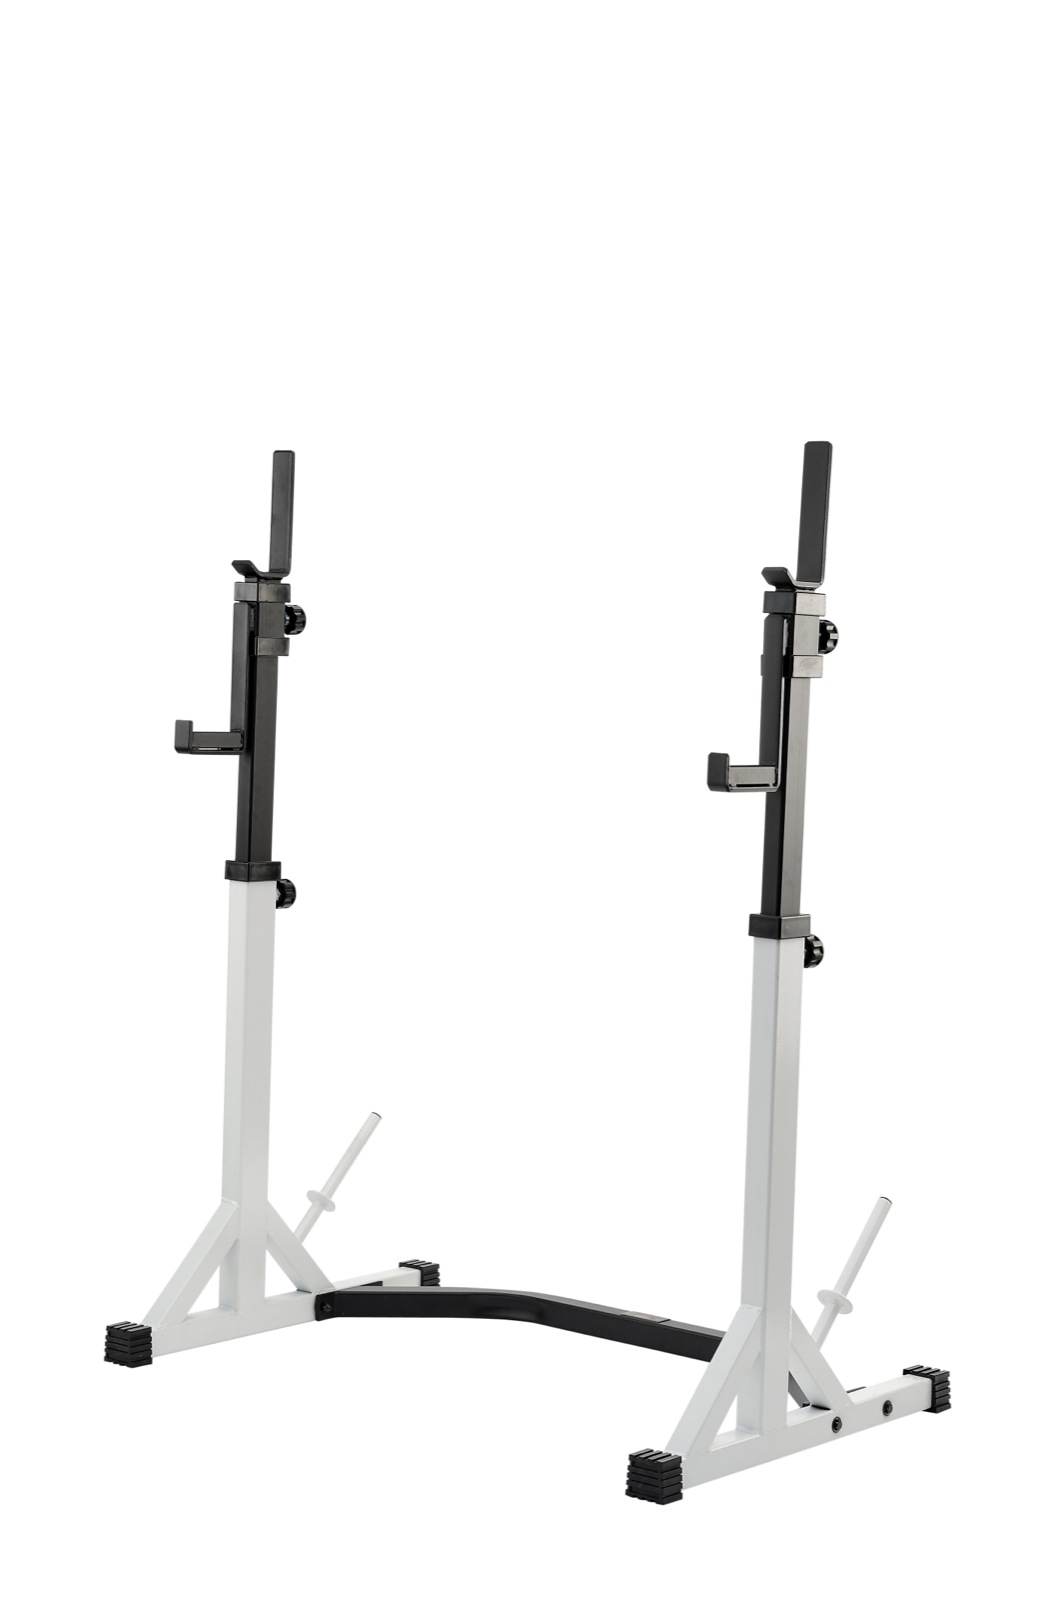 York Fts Press Squat Stand Chandler Sports